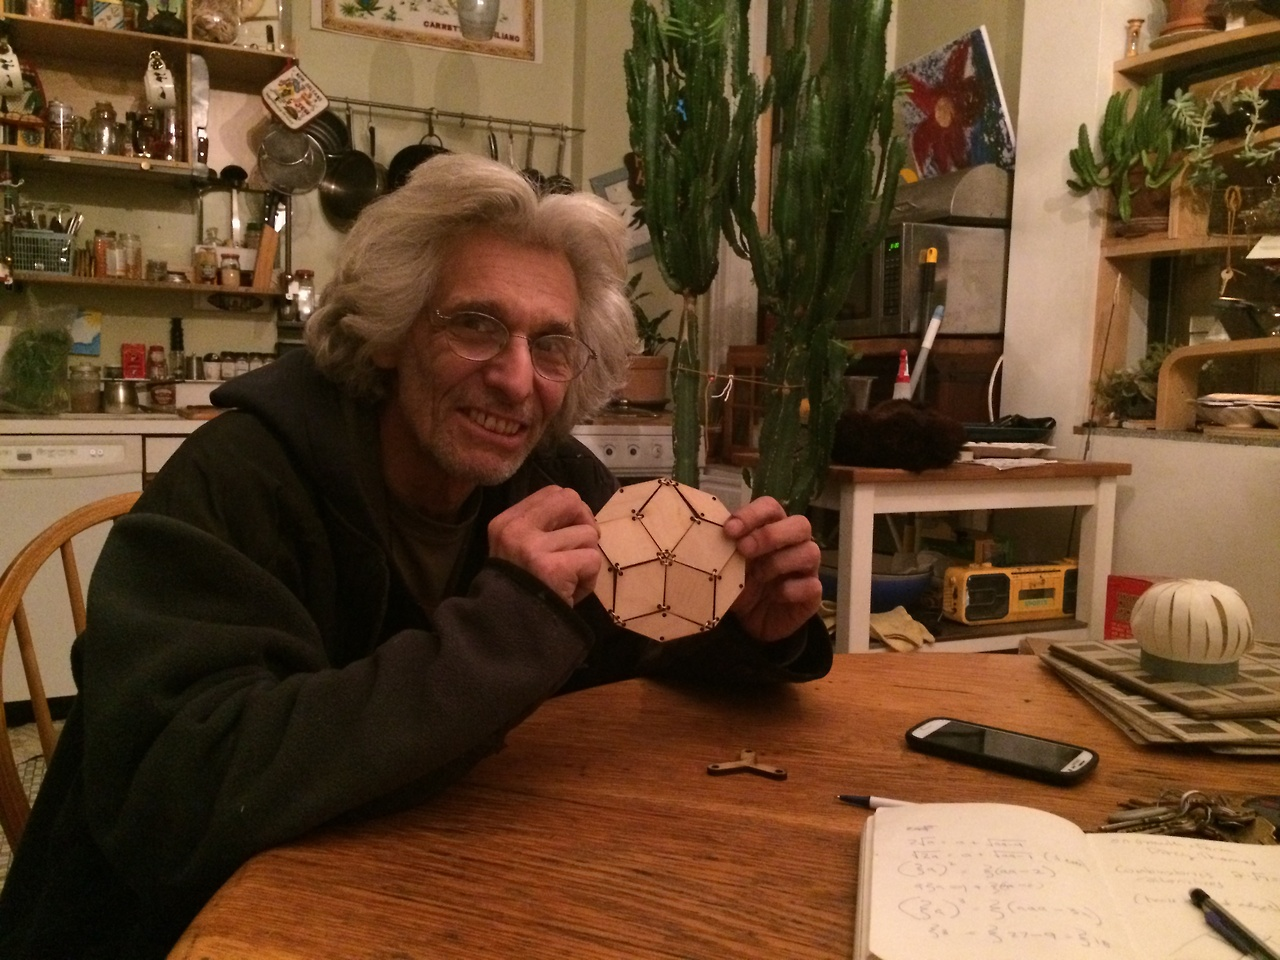 Gary Faro, mathematician and artist.  Introduced to me by an incoming student at the ITP welcome party, I paid him a visit at his Brooklyn home.  Gary generously sat with me for hours and explained his own math formulas and shared his insights into geometry and art.  Here he is holding one of my Penrose decagons!